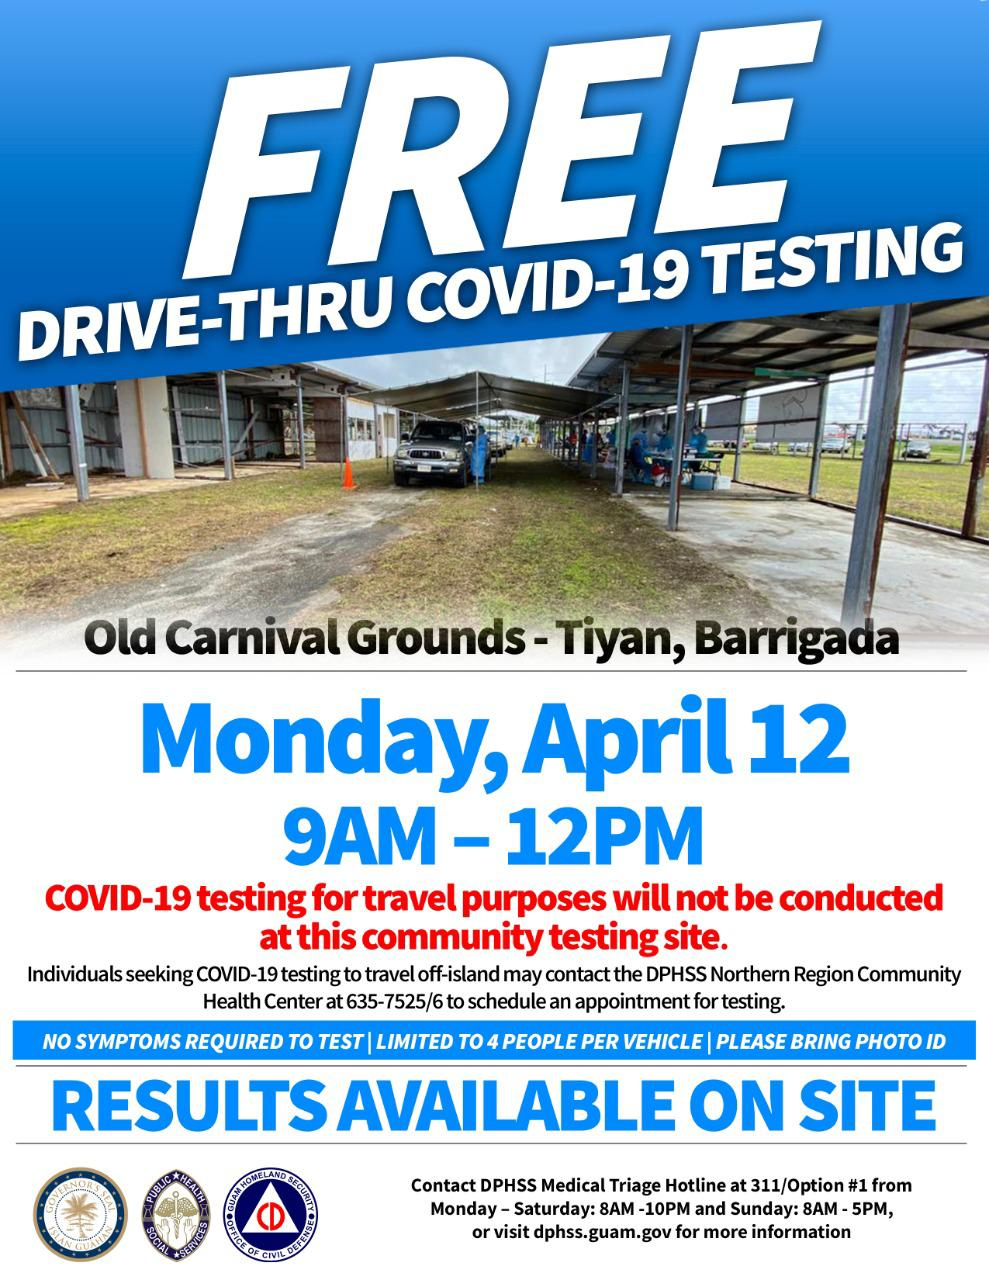 COVID-19 community testing today at old carnival grounds